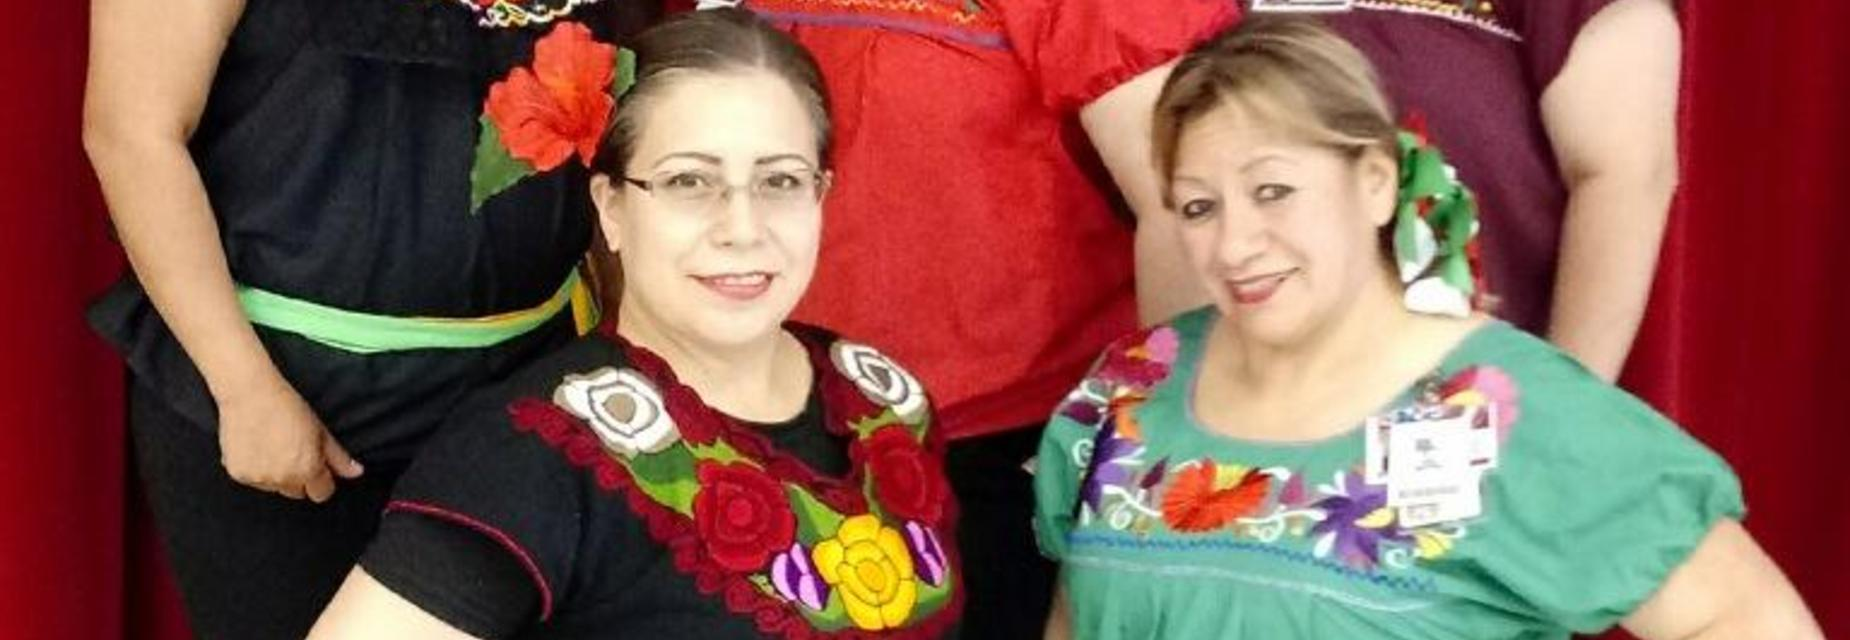 Cafeteria staff dressed up for 5 de mayo